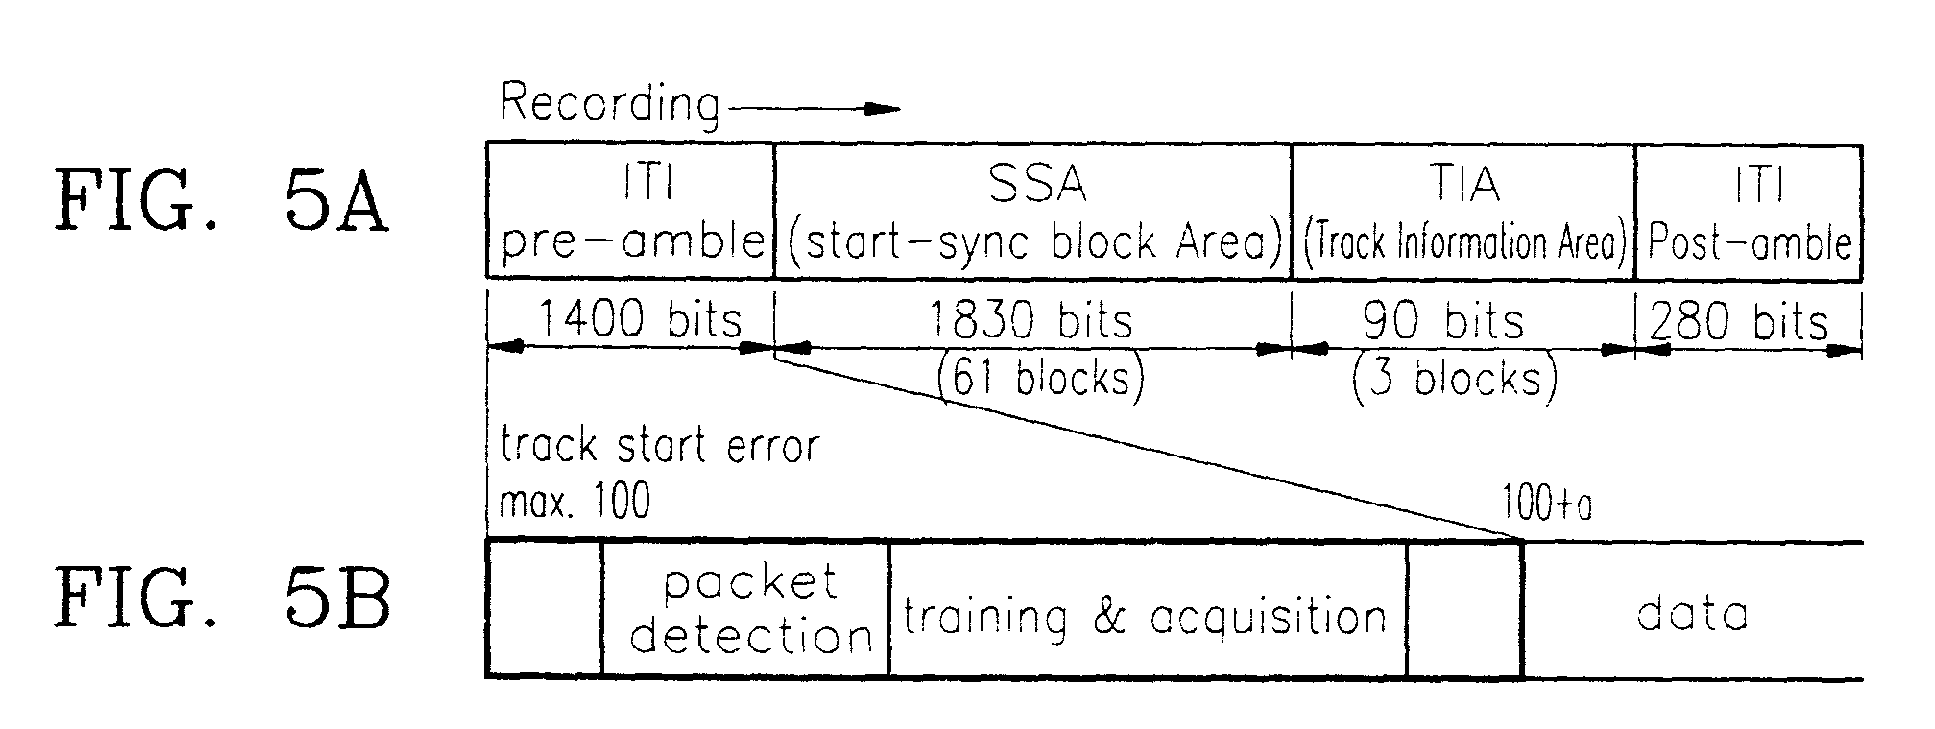 Ep0860996a2 Adaptive Signal Processing Method And Circuit For A Digital White Noise Generator Figure 00000001